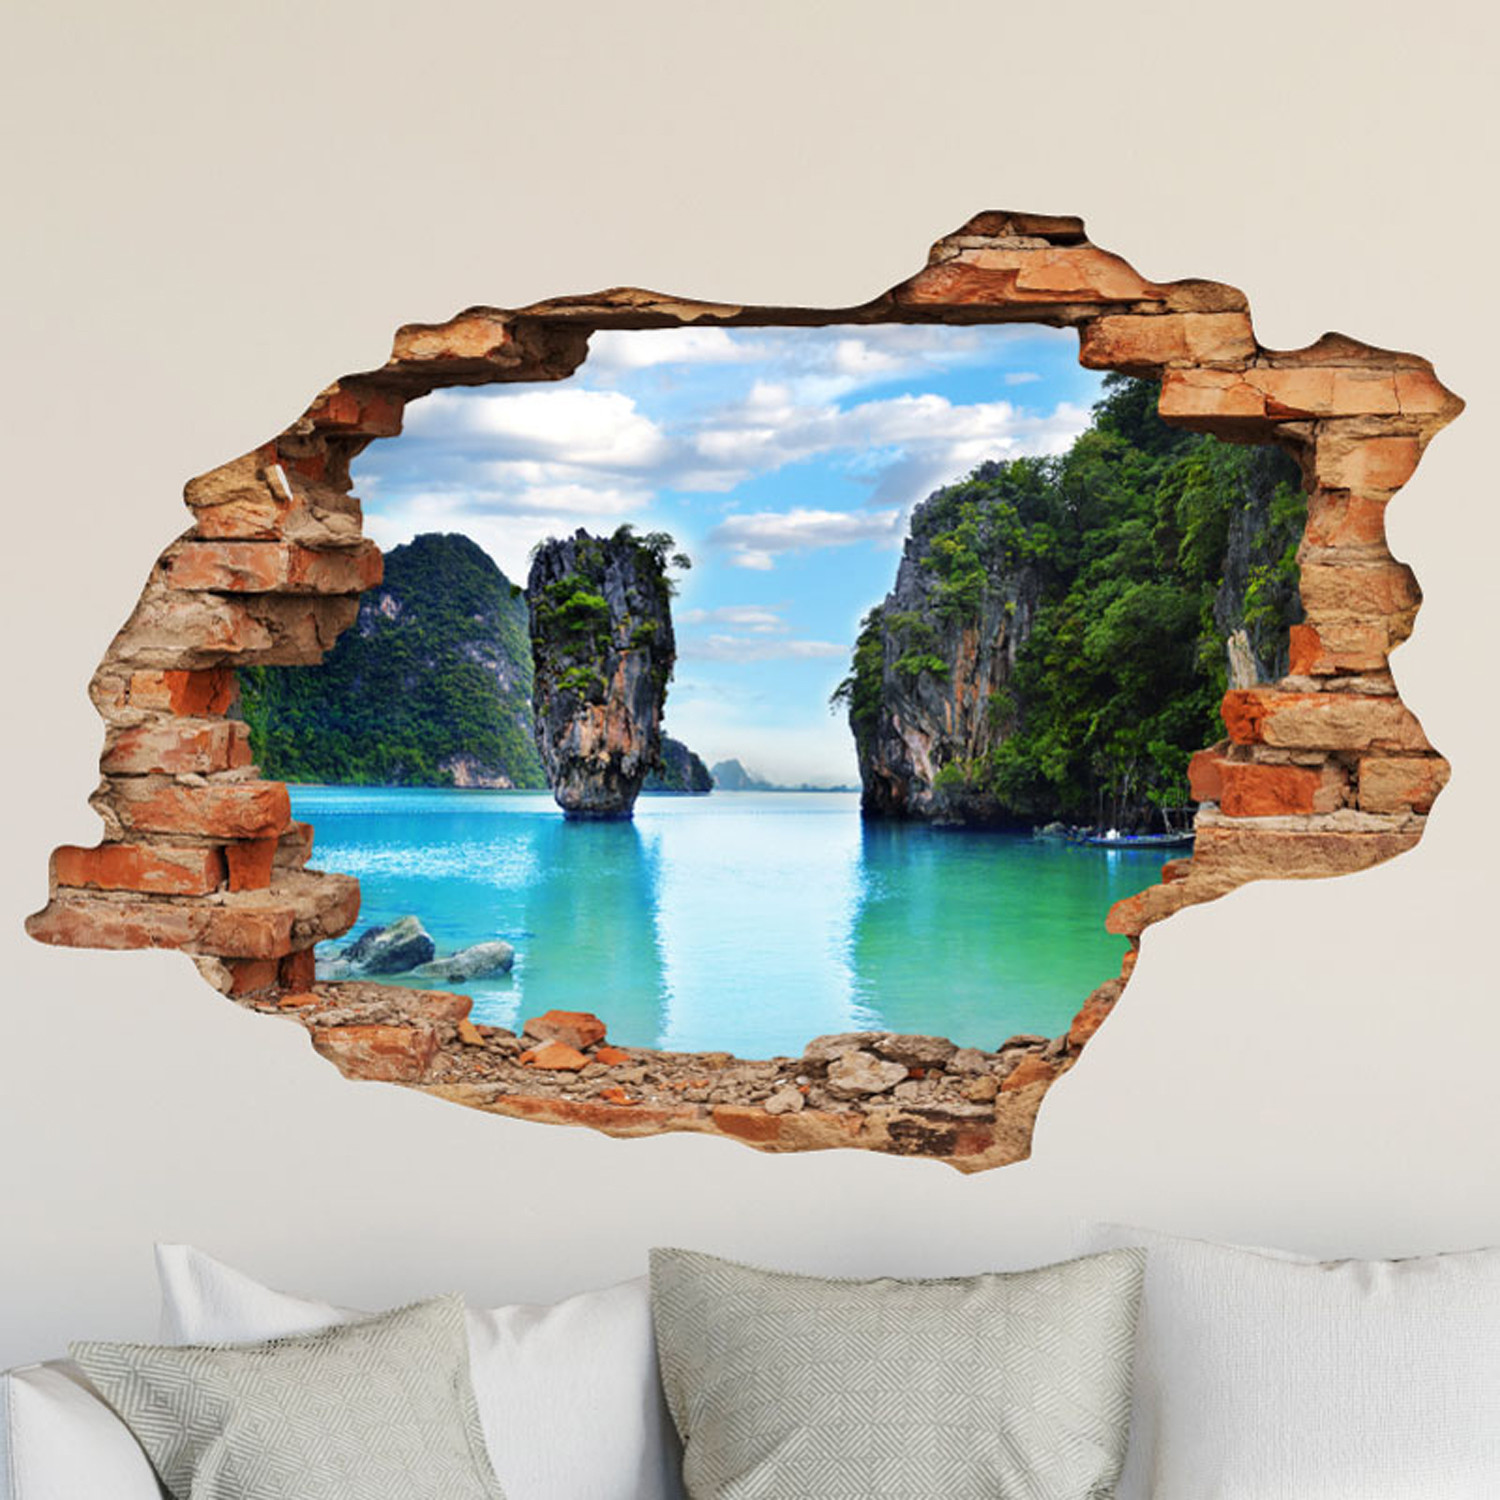 Animal Wall Sticker Khao Phing Kan Thailand Ambiance Live Touch Of Modern